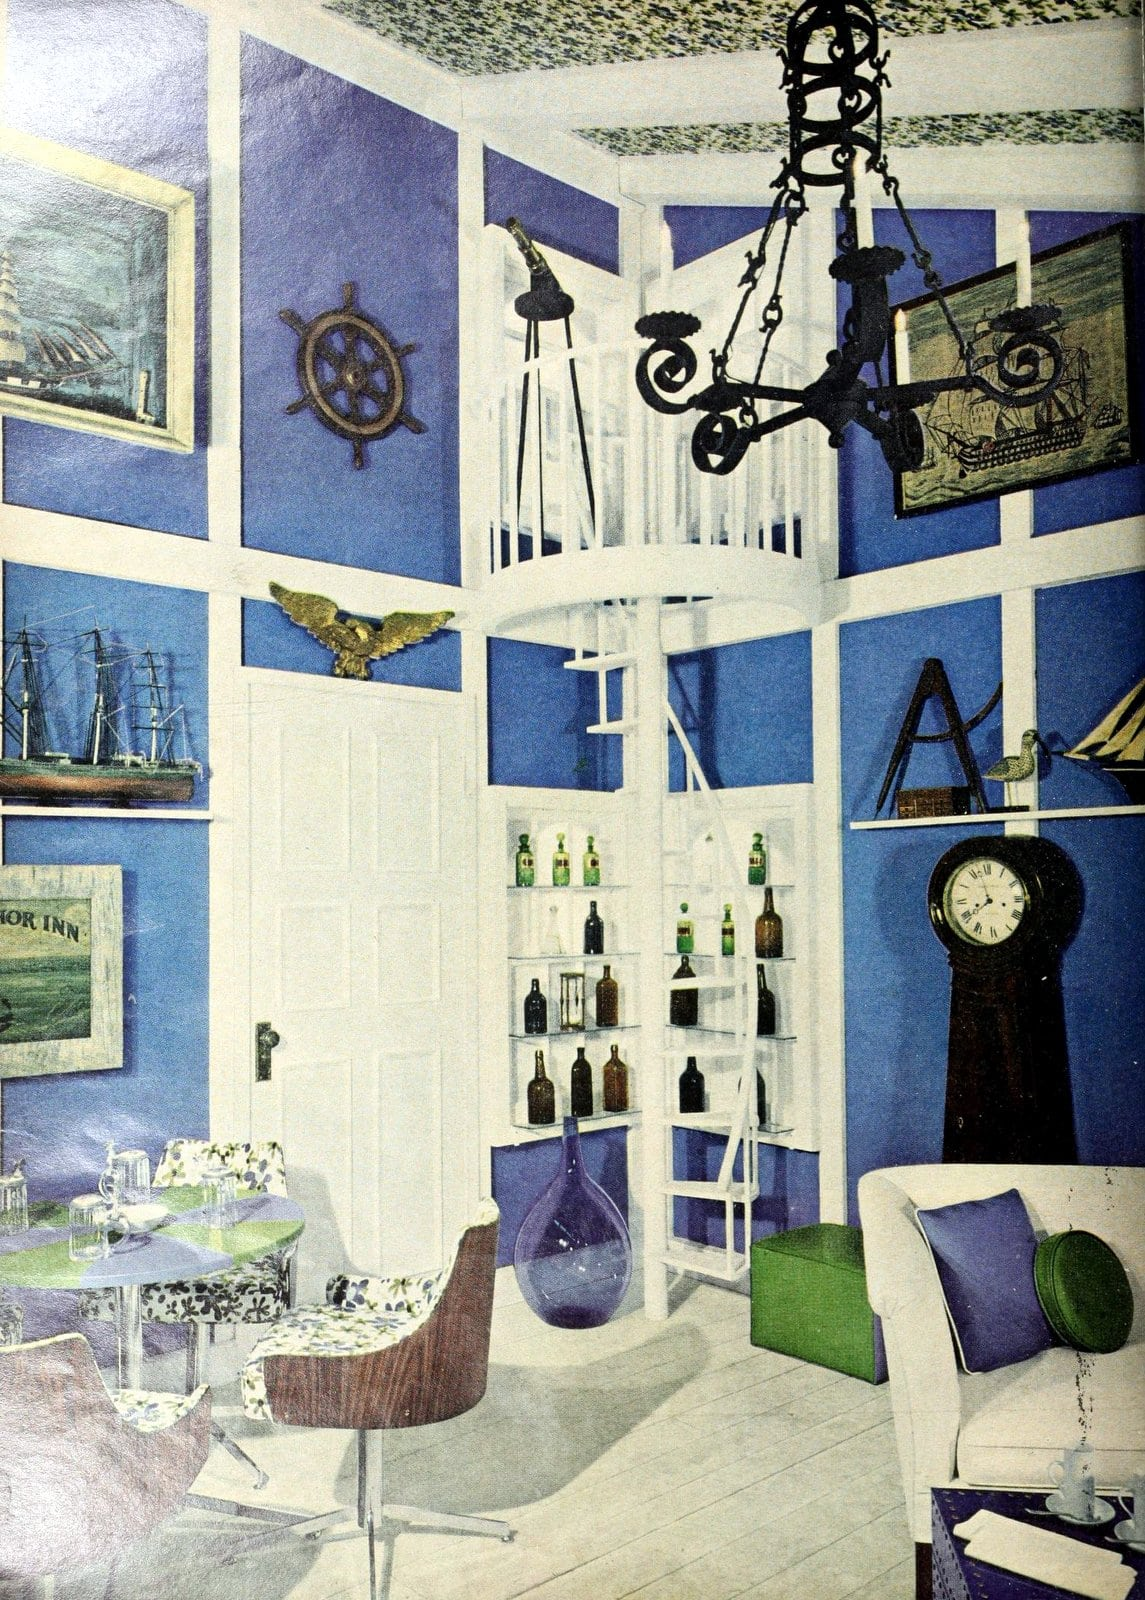 Unique blue and white wall treatment with lots of artwork and modern furniture (1963)